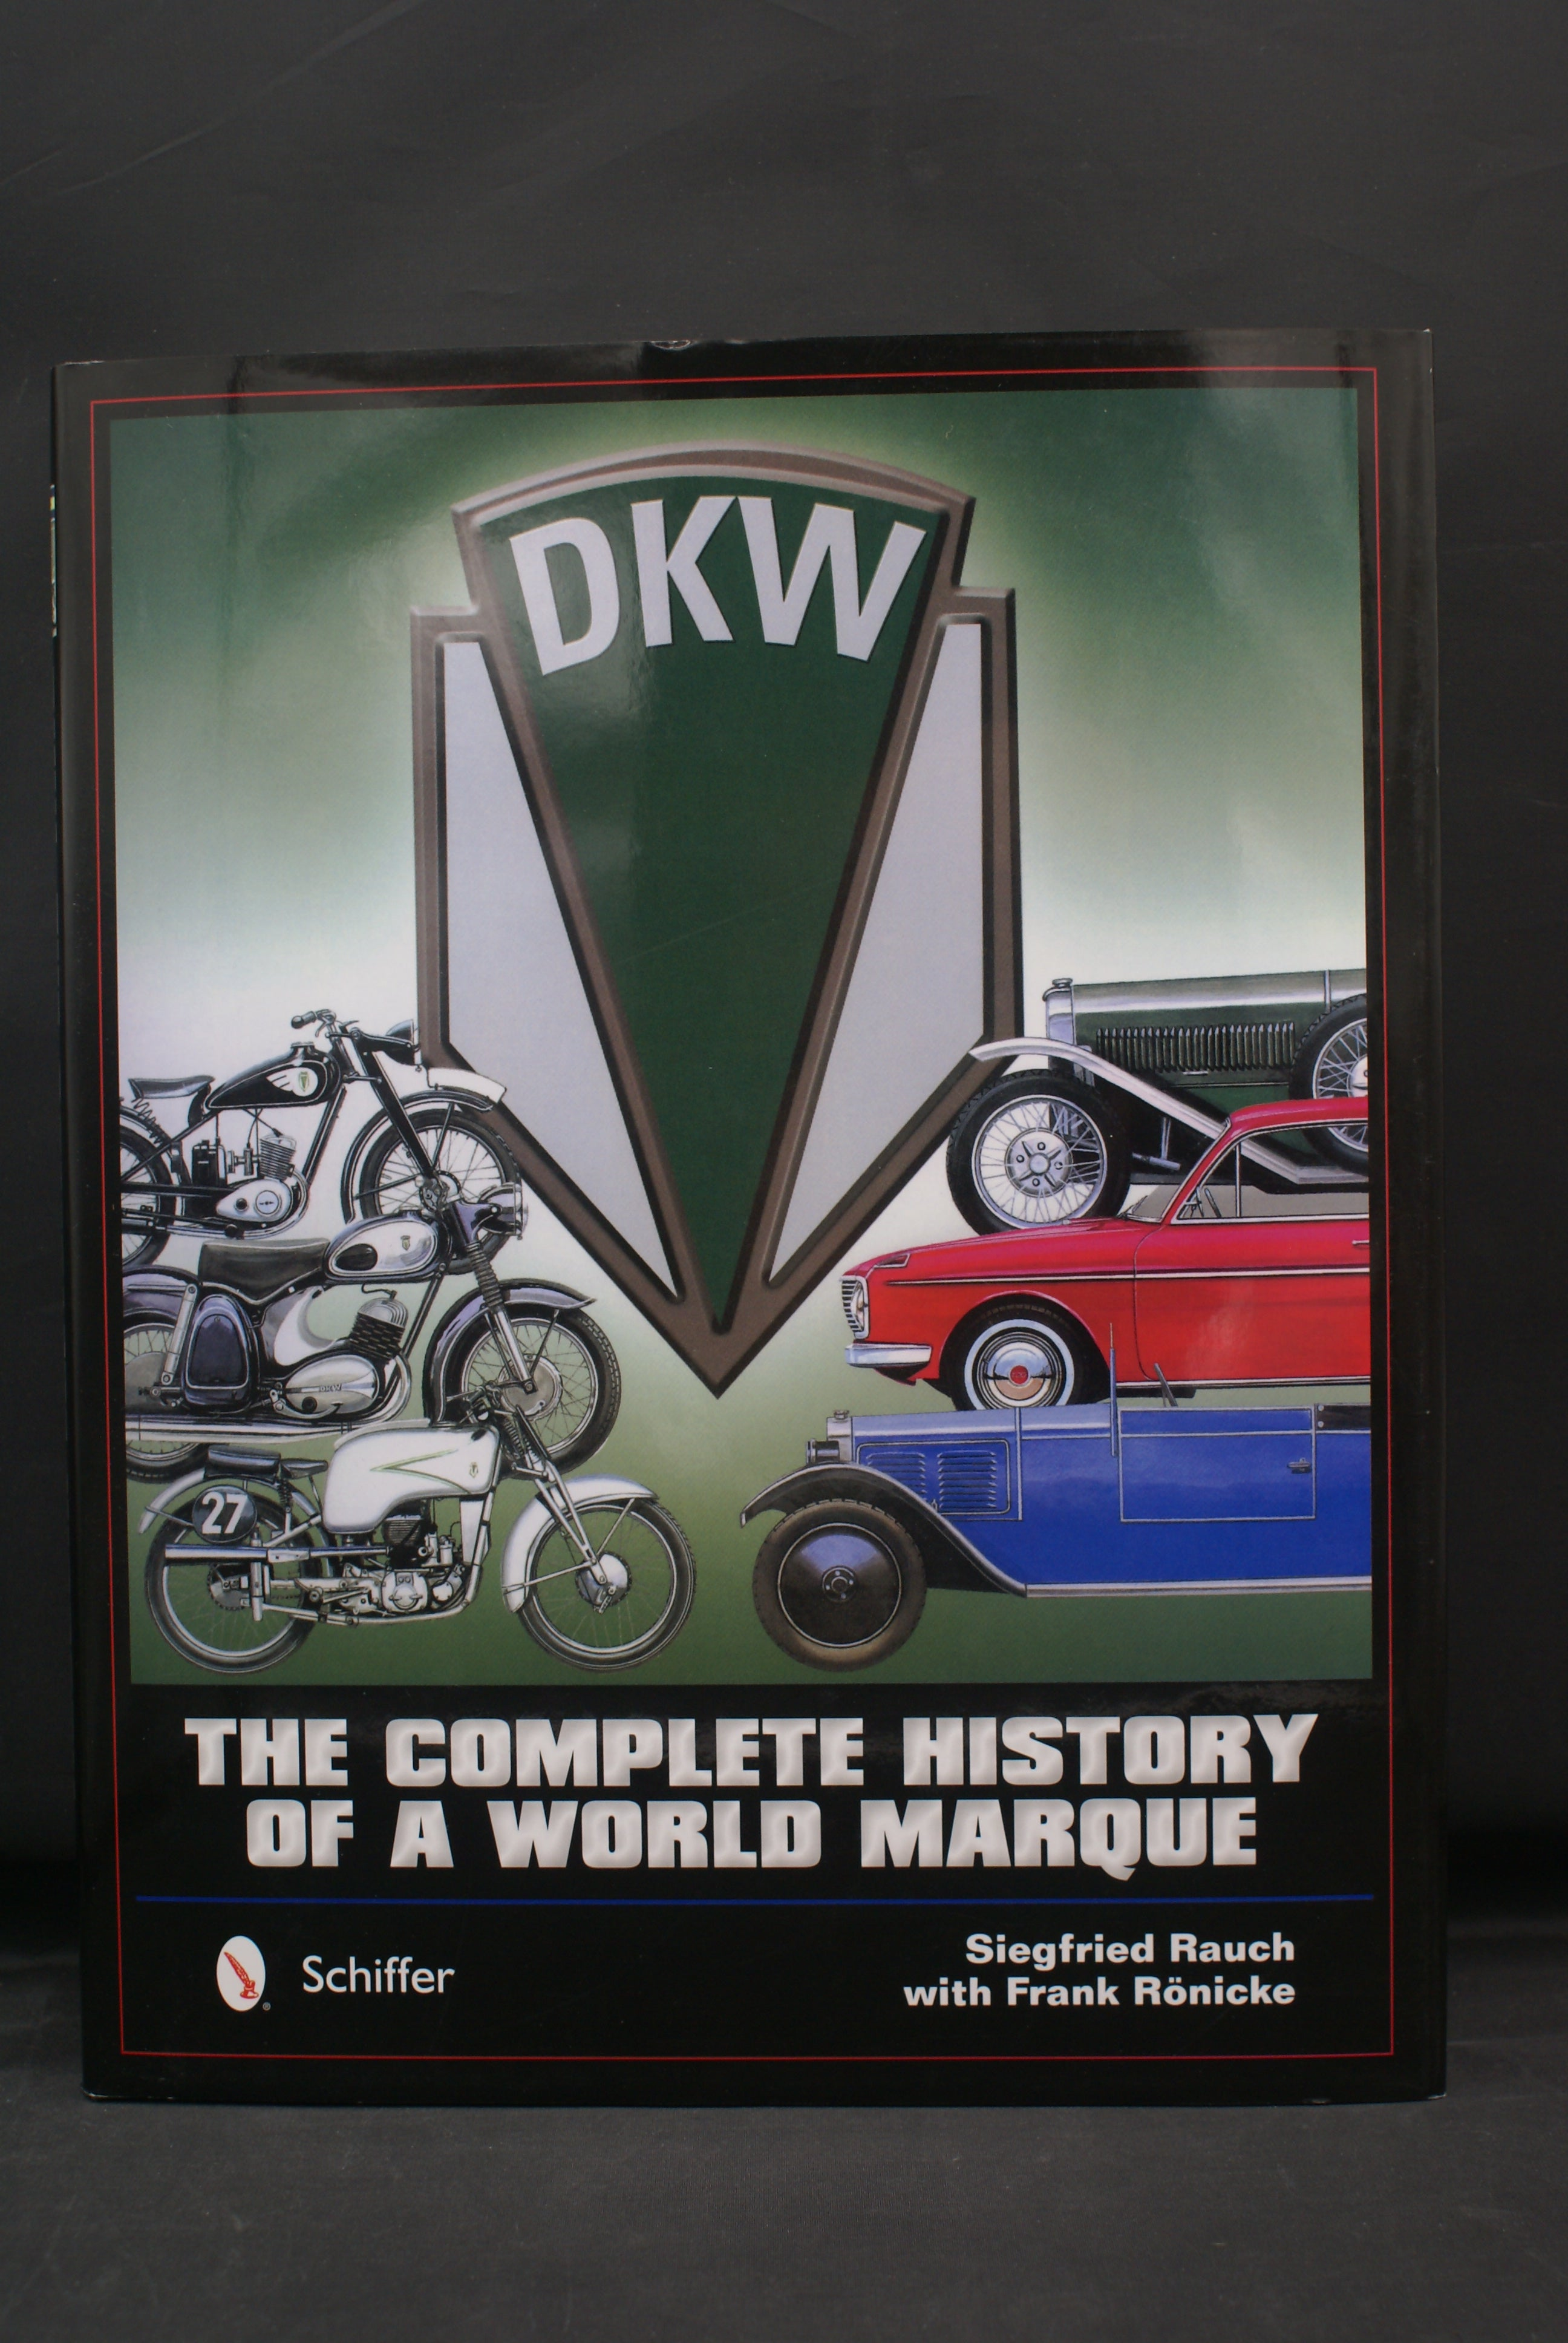 DKW, The complete history of a world marque